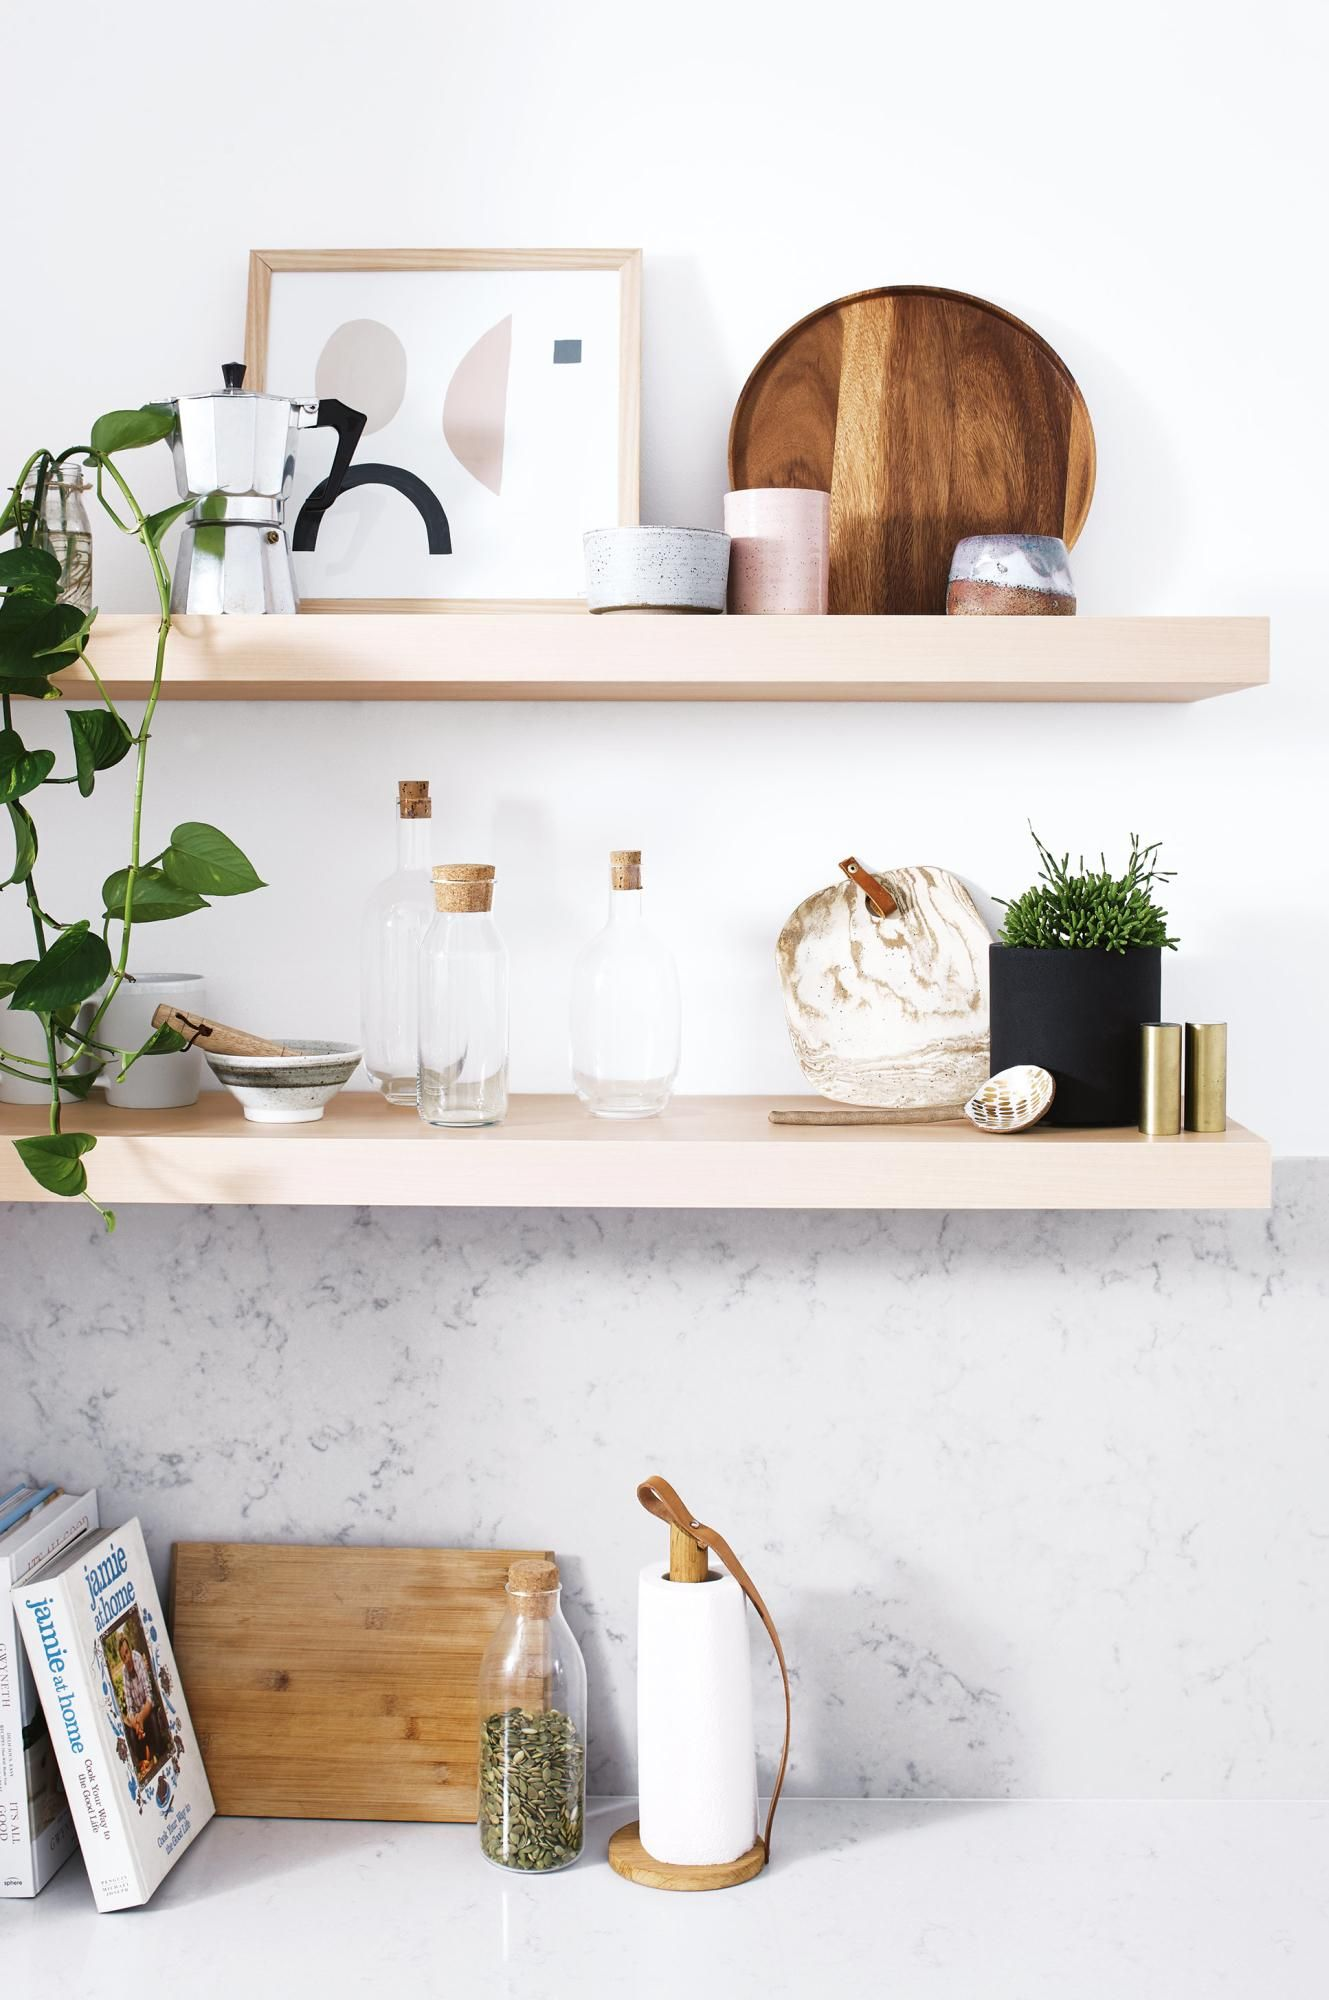 Ikea 'Lack' wall shelves (With images) Dining room